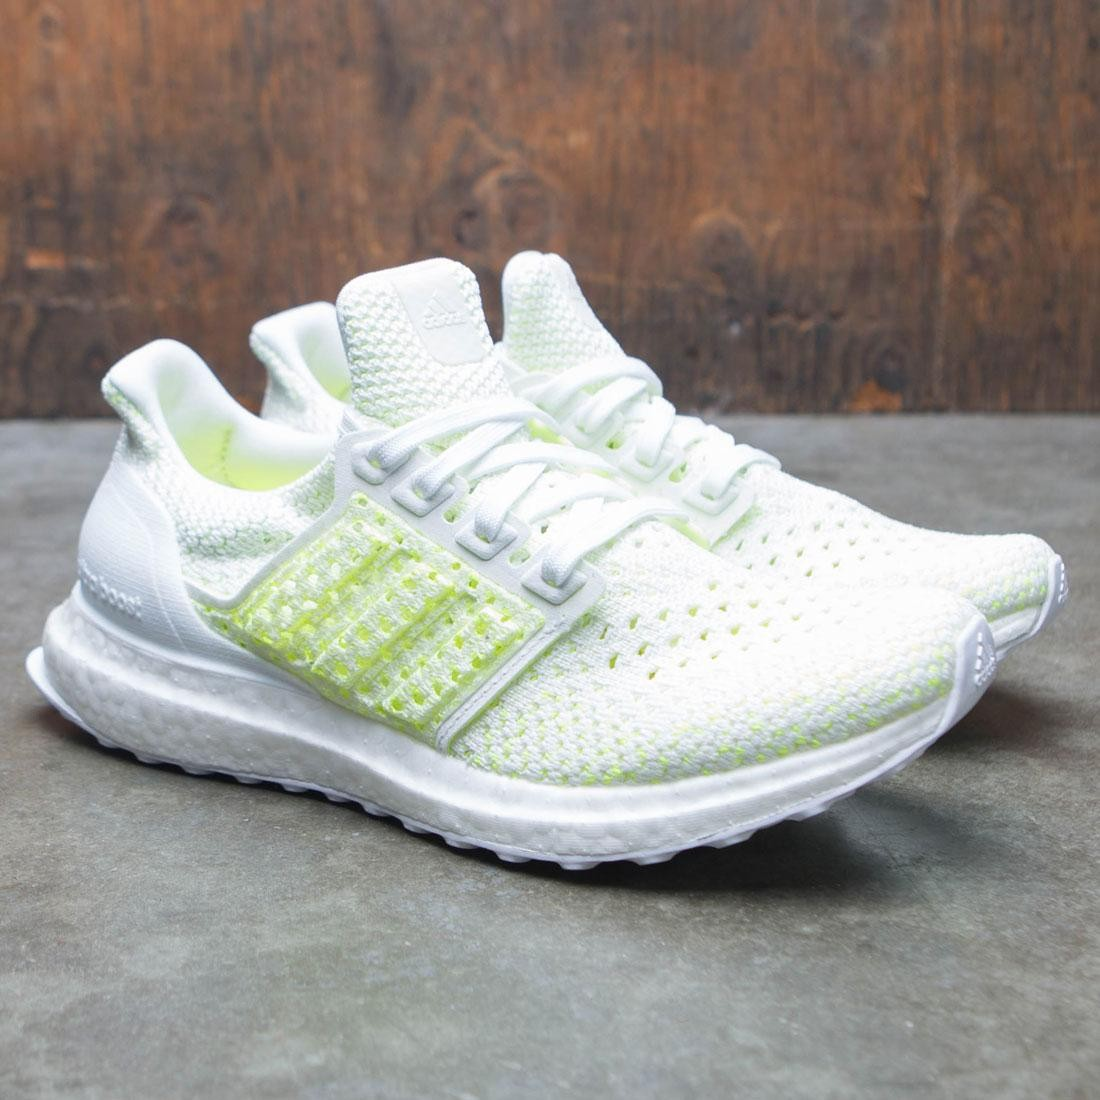 2f3875a8498c Adidas Big Kids UltraBOOST Clima J (white   footwear white   shock yellow)